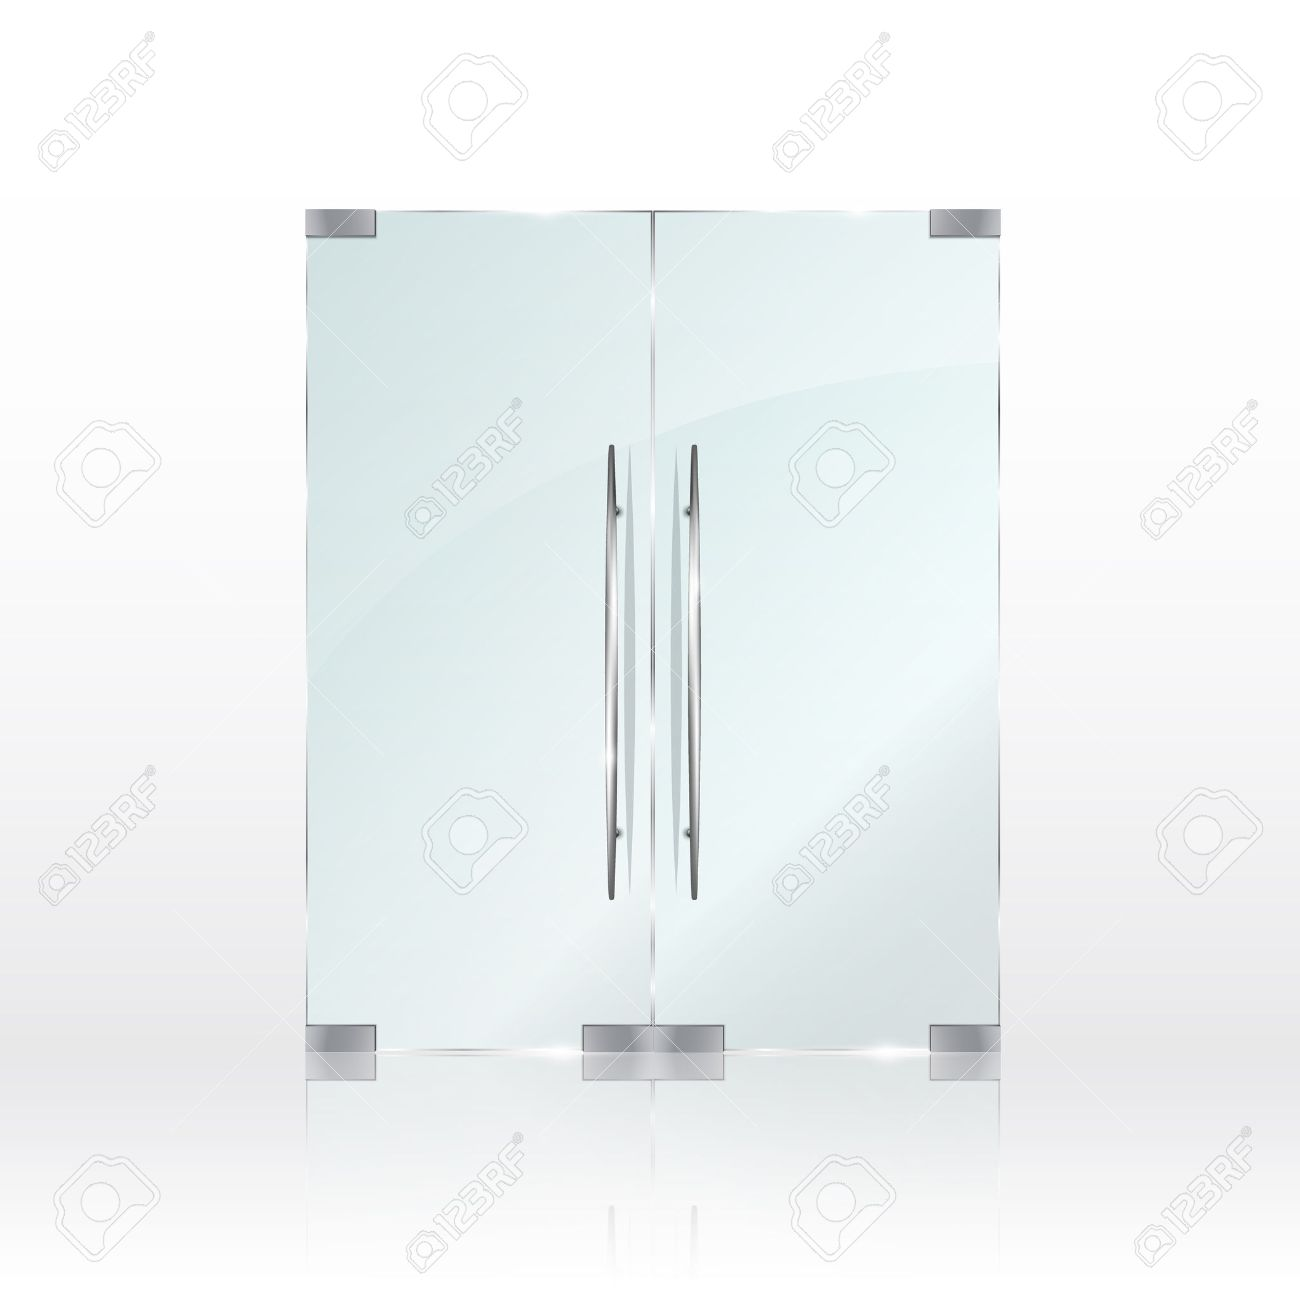 Glass doors isolated on transparent background. Vector illustration - 69032593